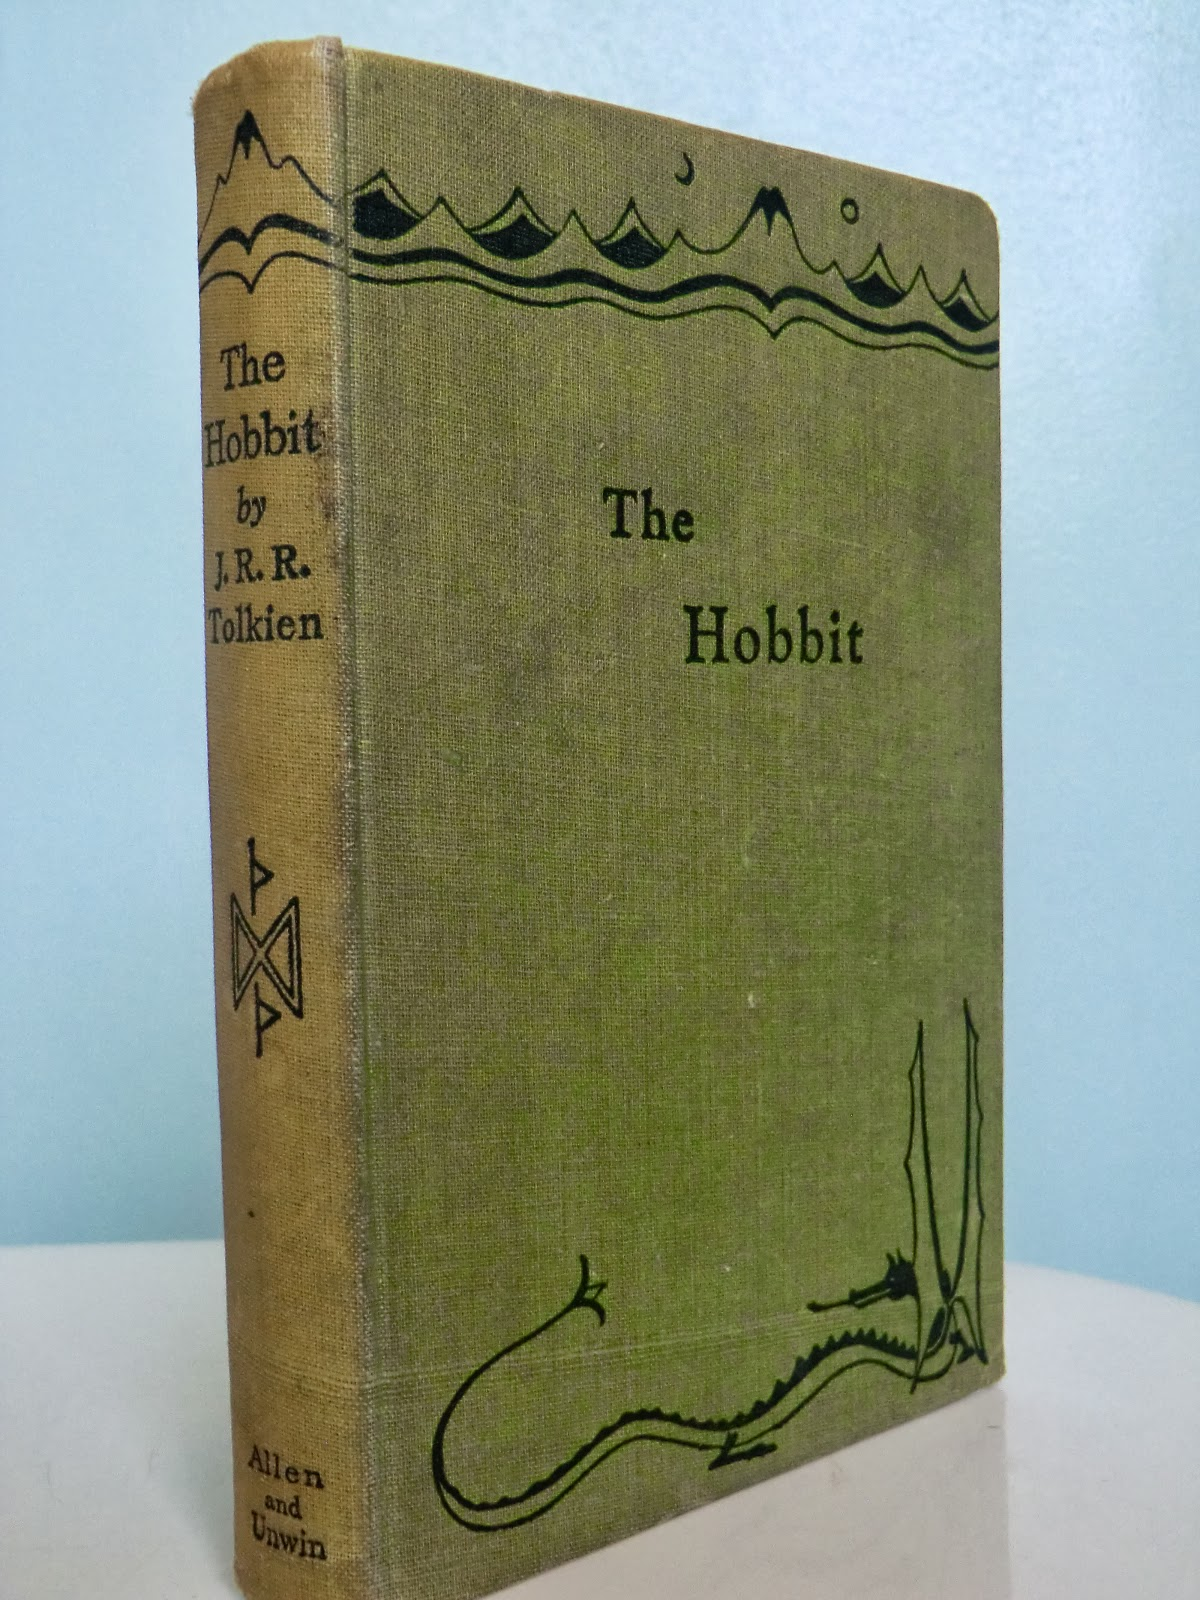 An Antique Books Guide: J.R.R Tolkien - Values Of The Hobbit, Lord ...